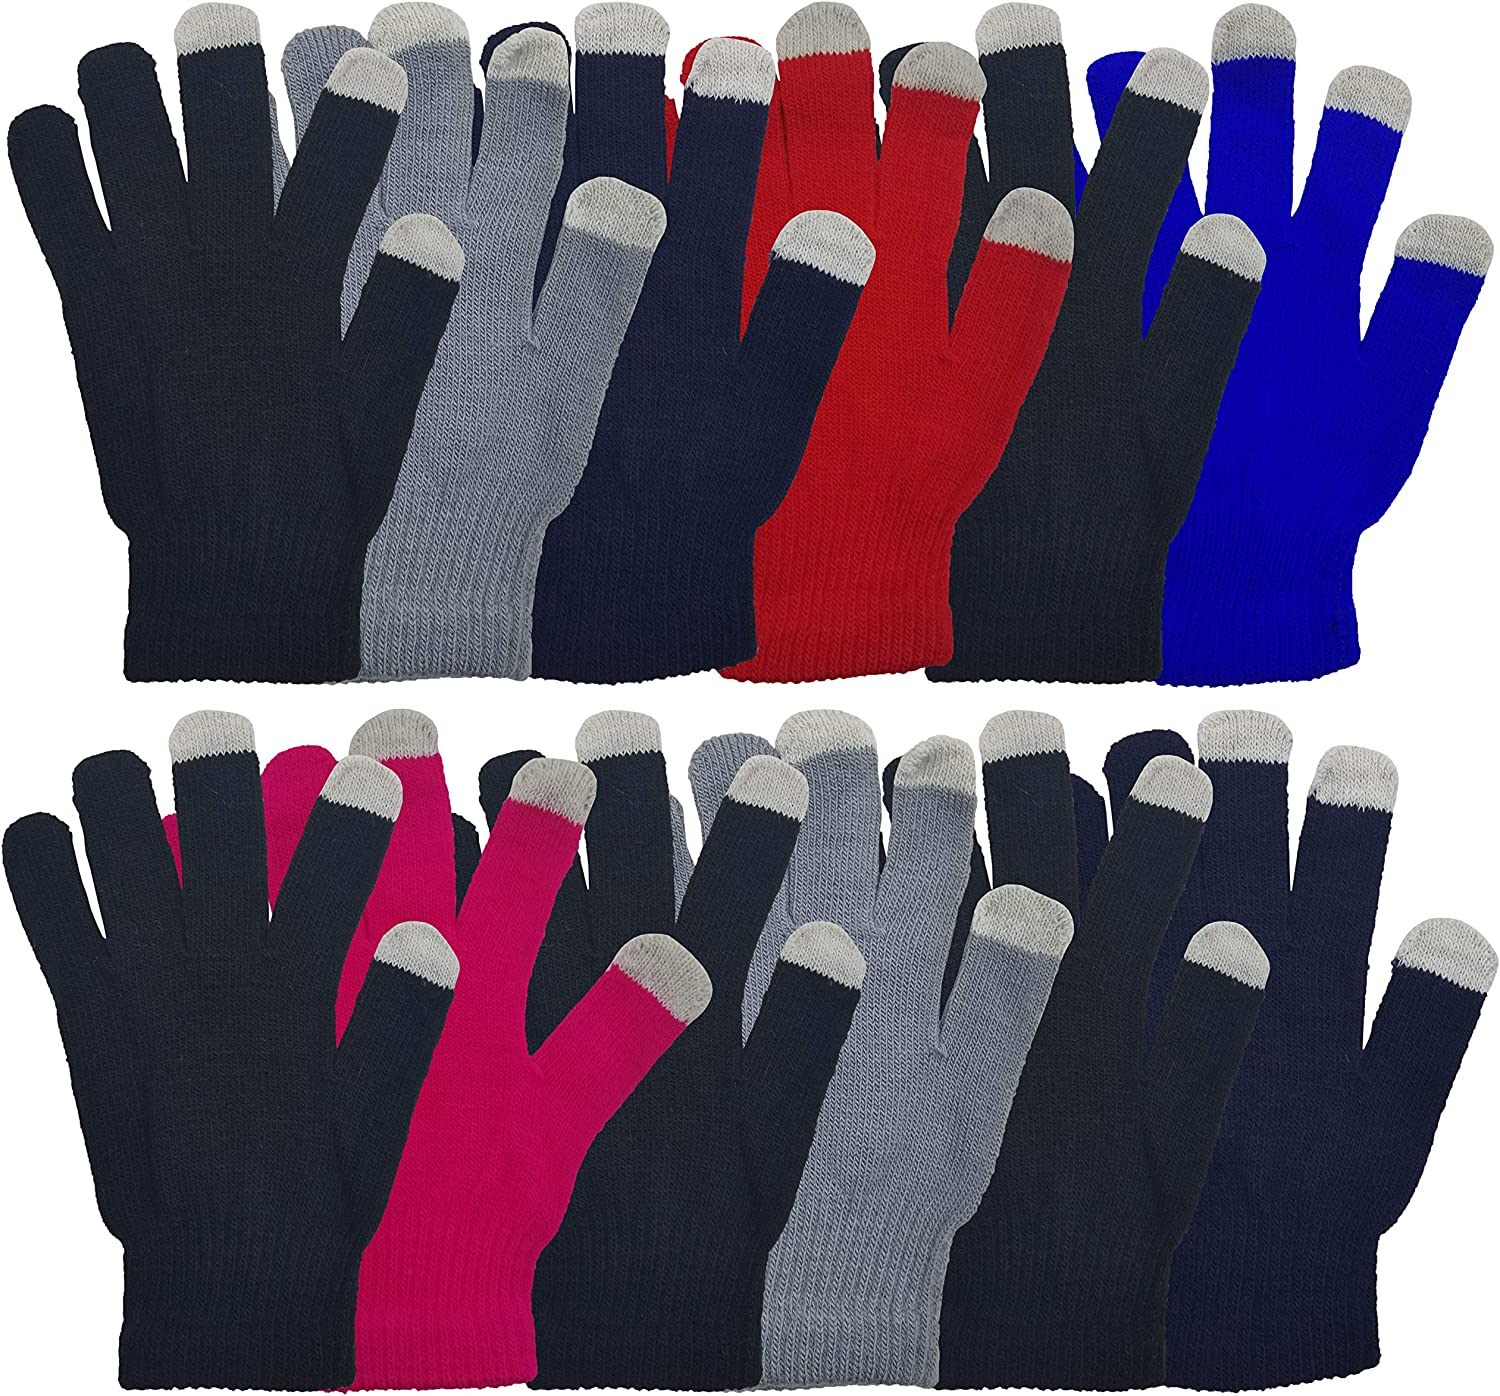 Pangda 12 Pairs Touchscreen Gloves Stretch Knitted Texting Gloves Warm Windproof Solid Color Mittens For men and Women